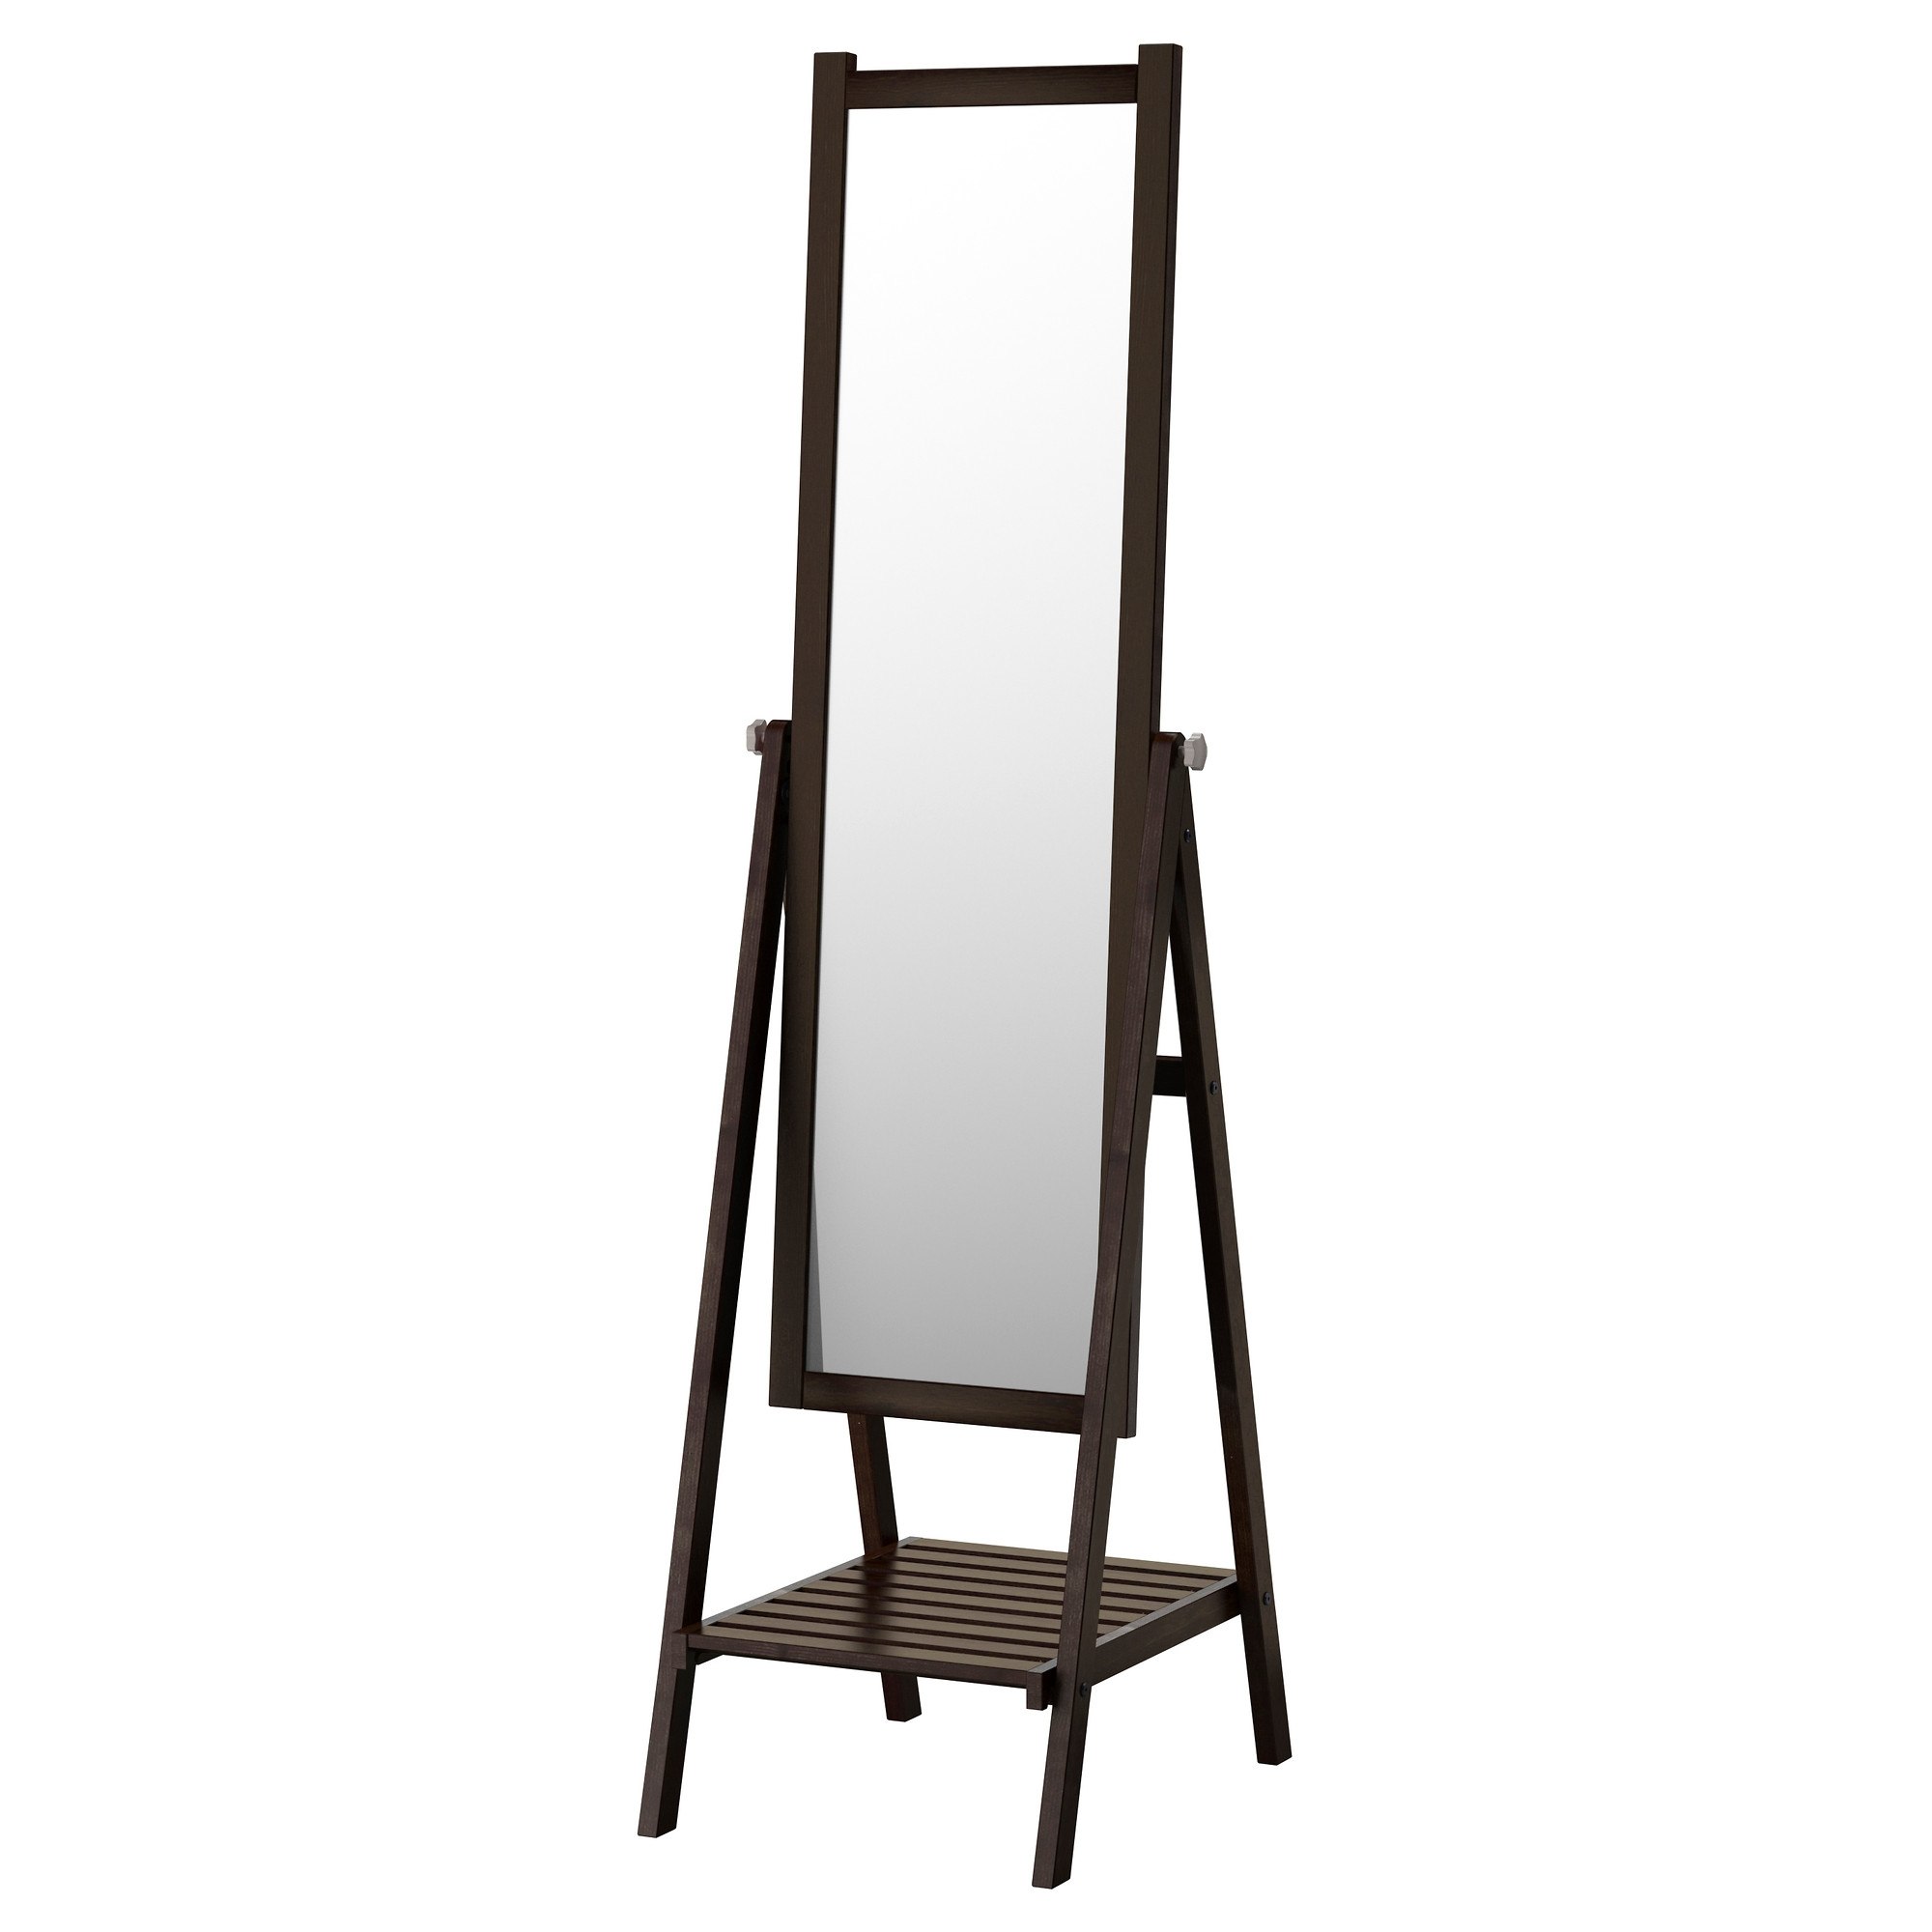 Mirrors Ikea Throughout Black Floor Standing Mirror (Image 12 of 15)